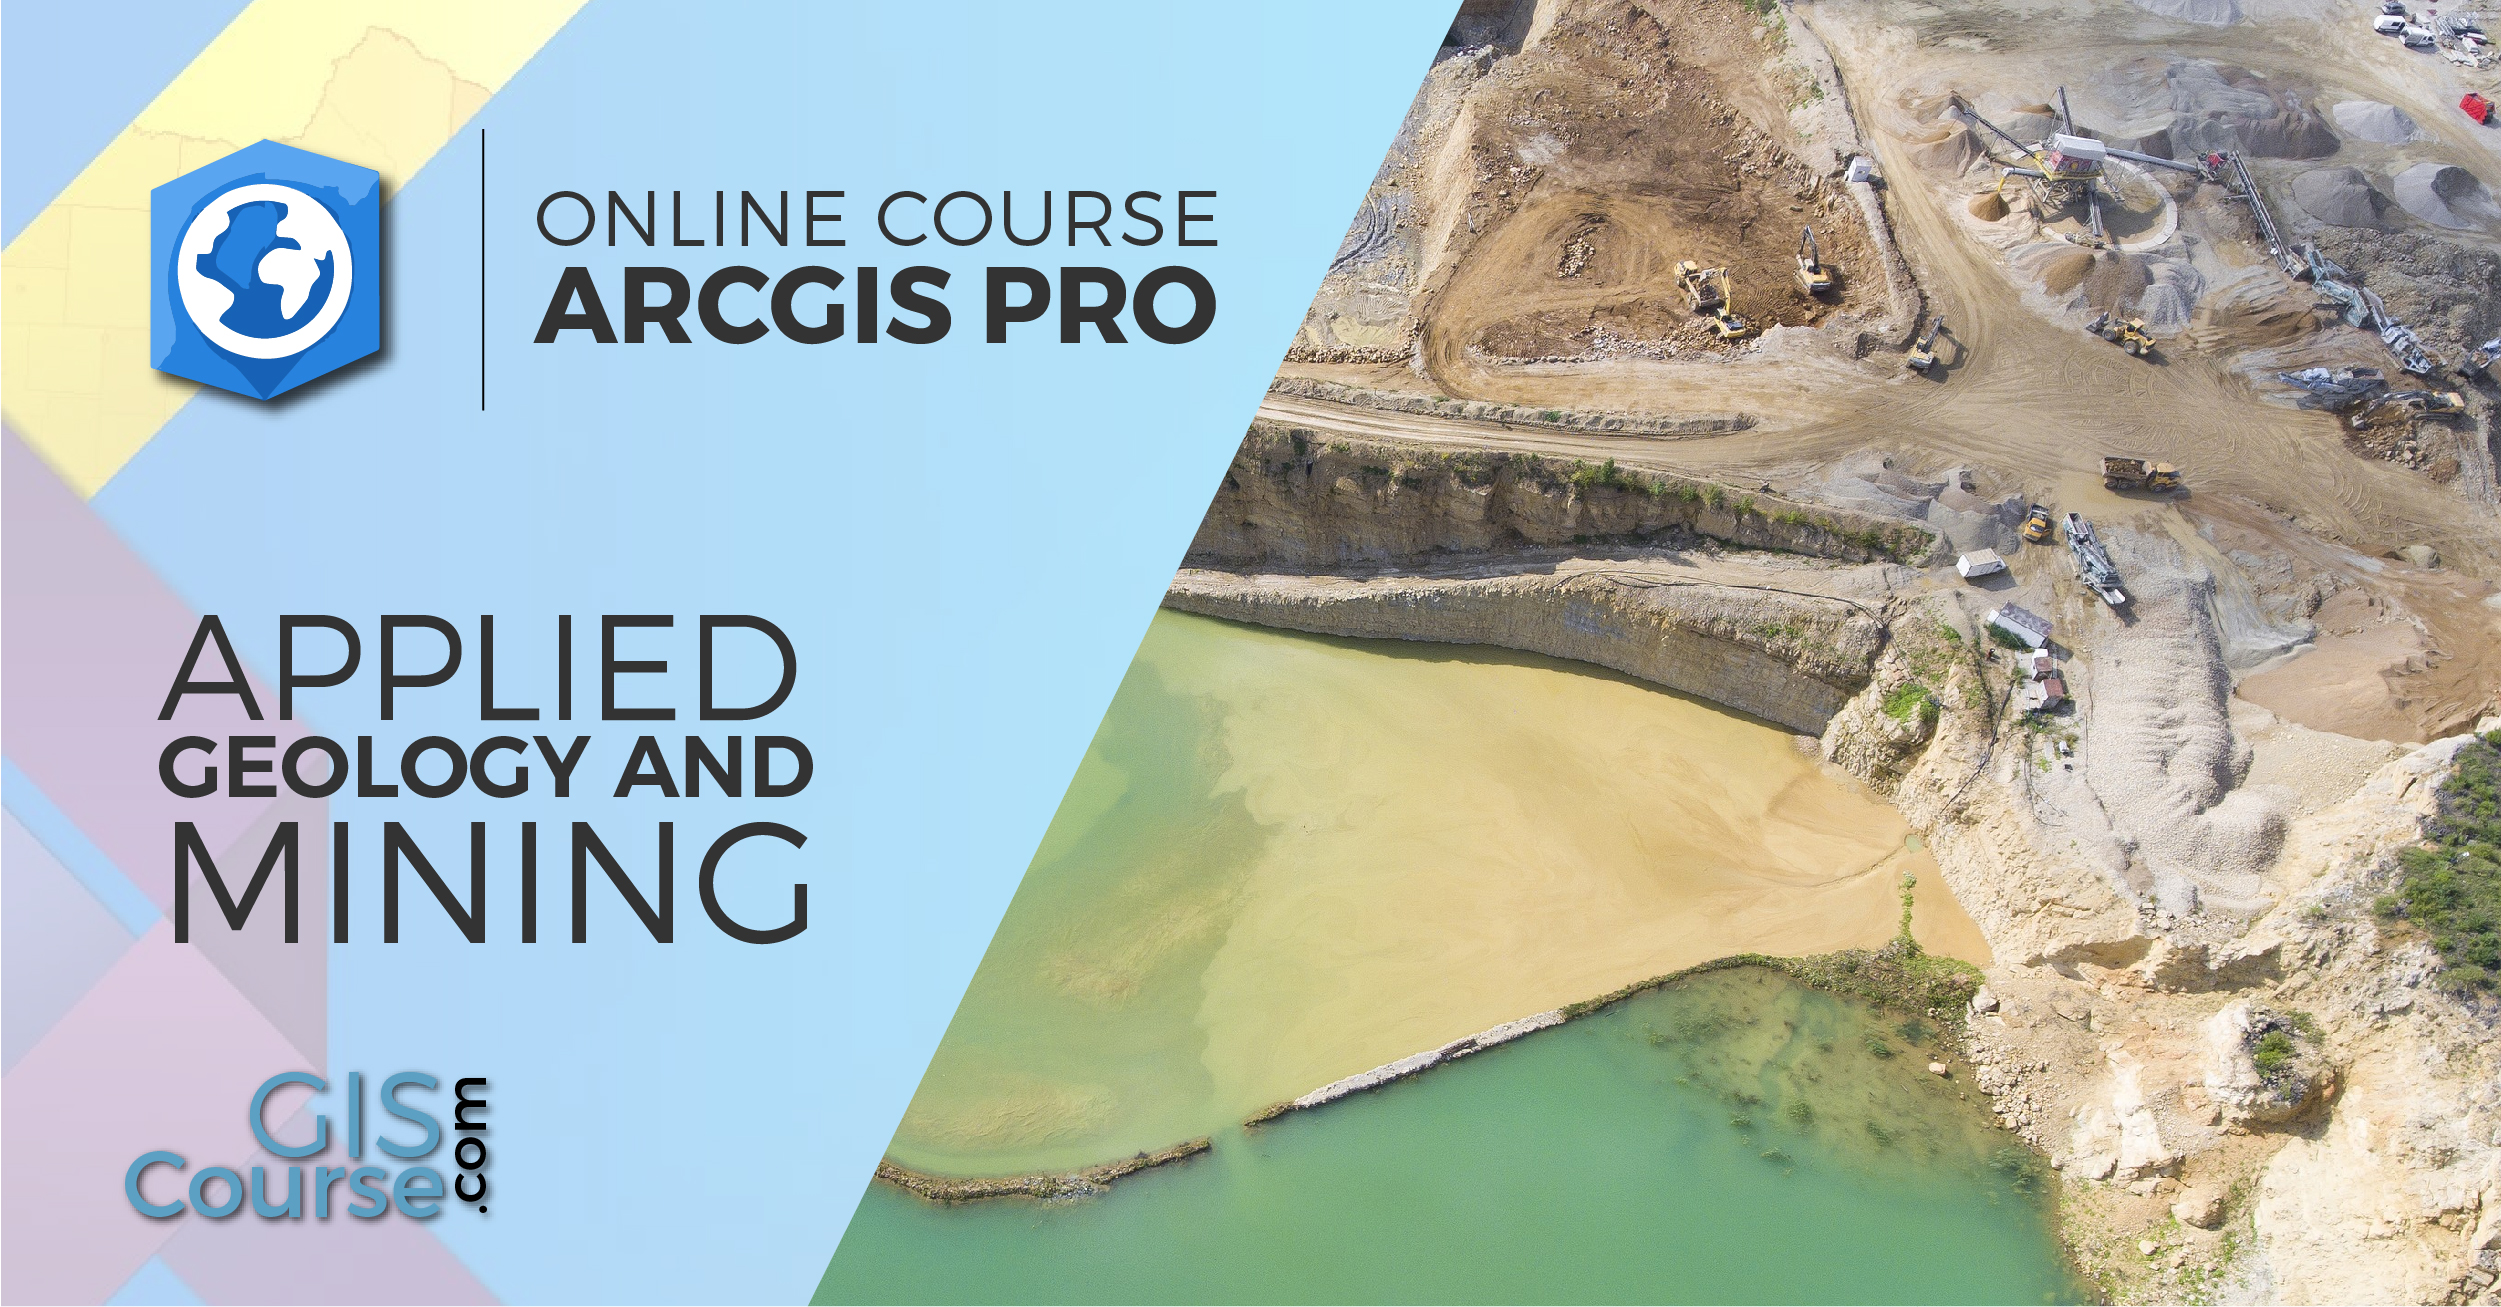 ArcGIS Pro Course applied to Geology and Mining - Online GIS Training